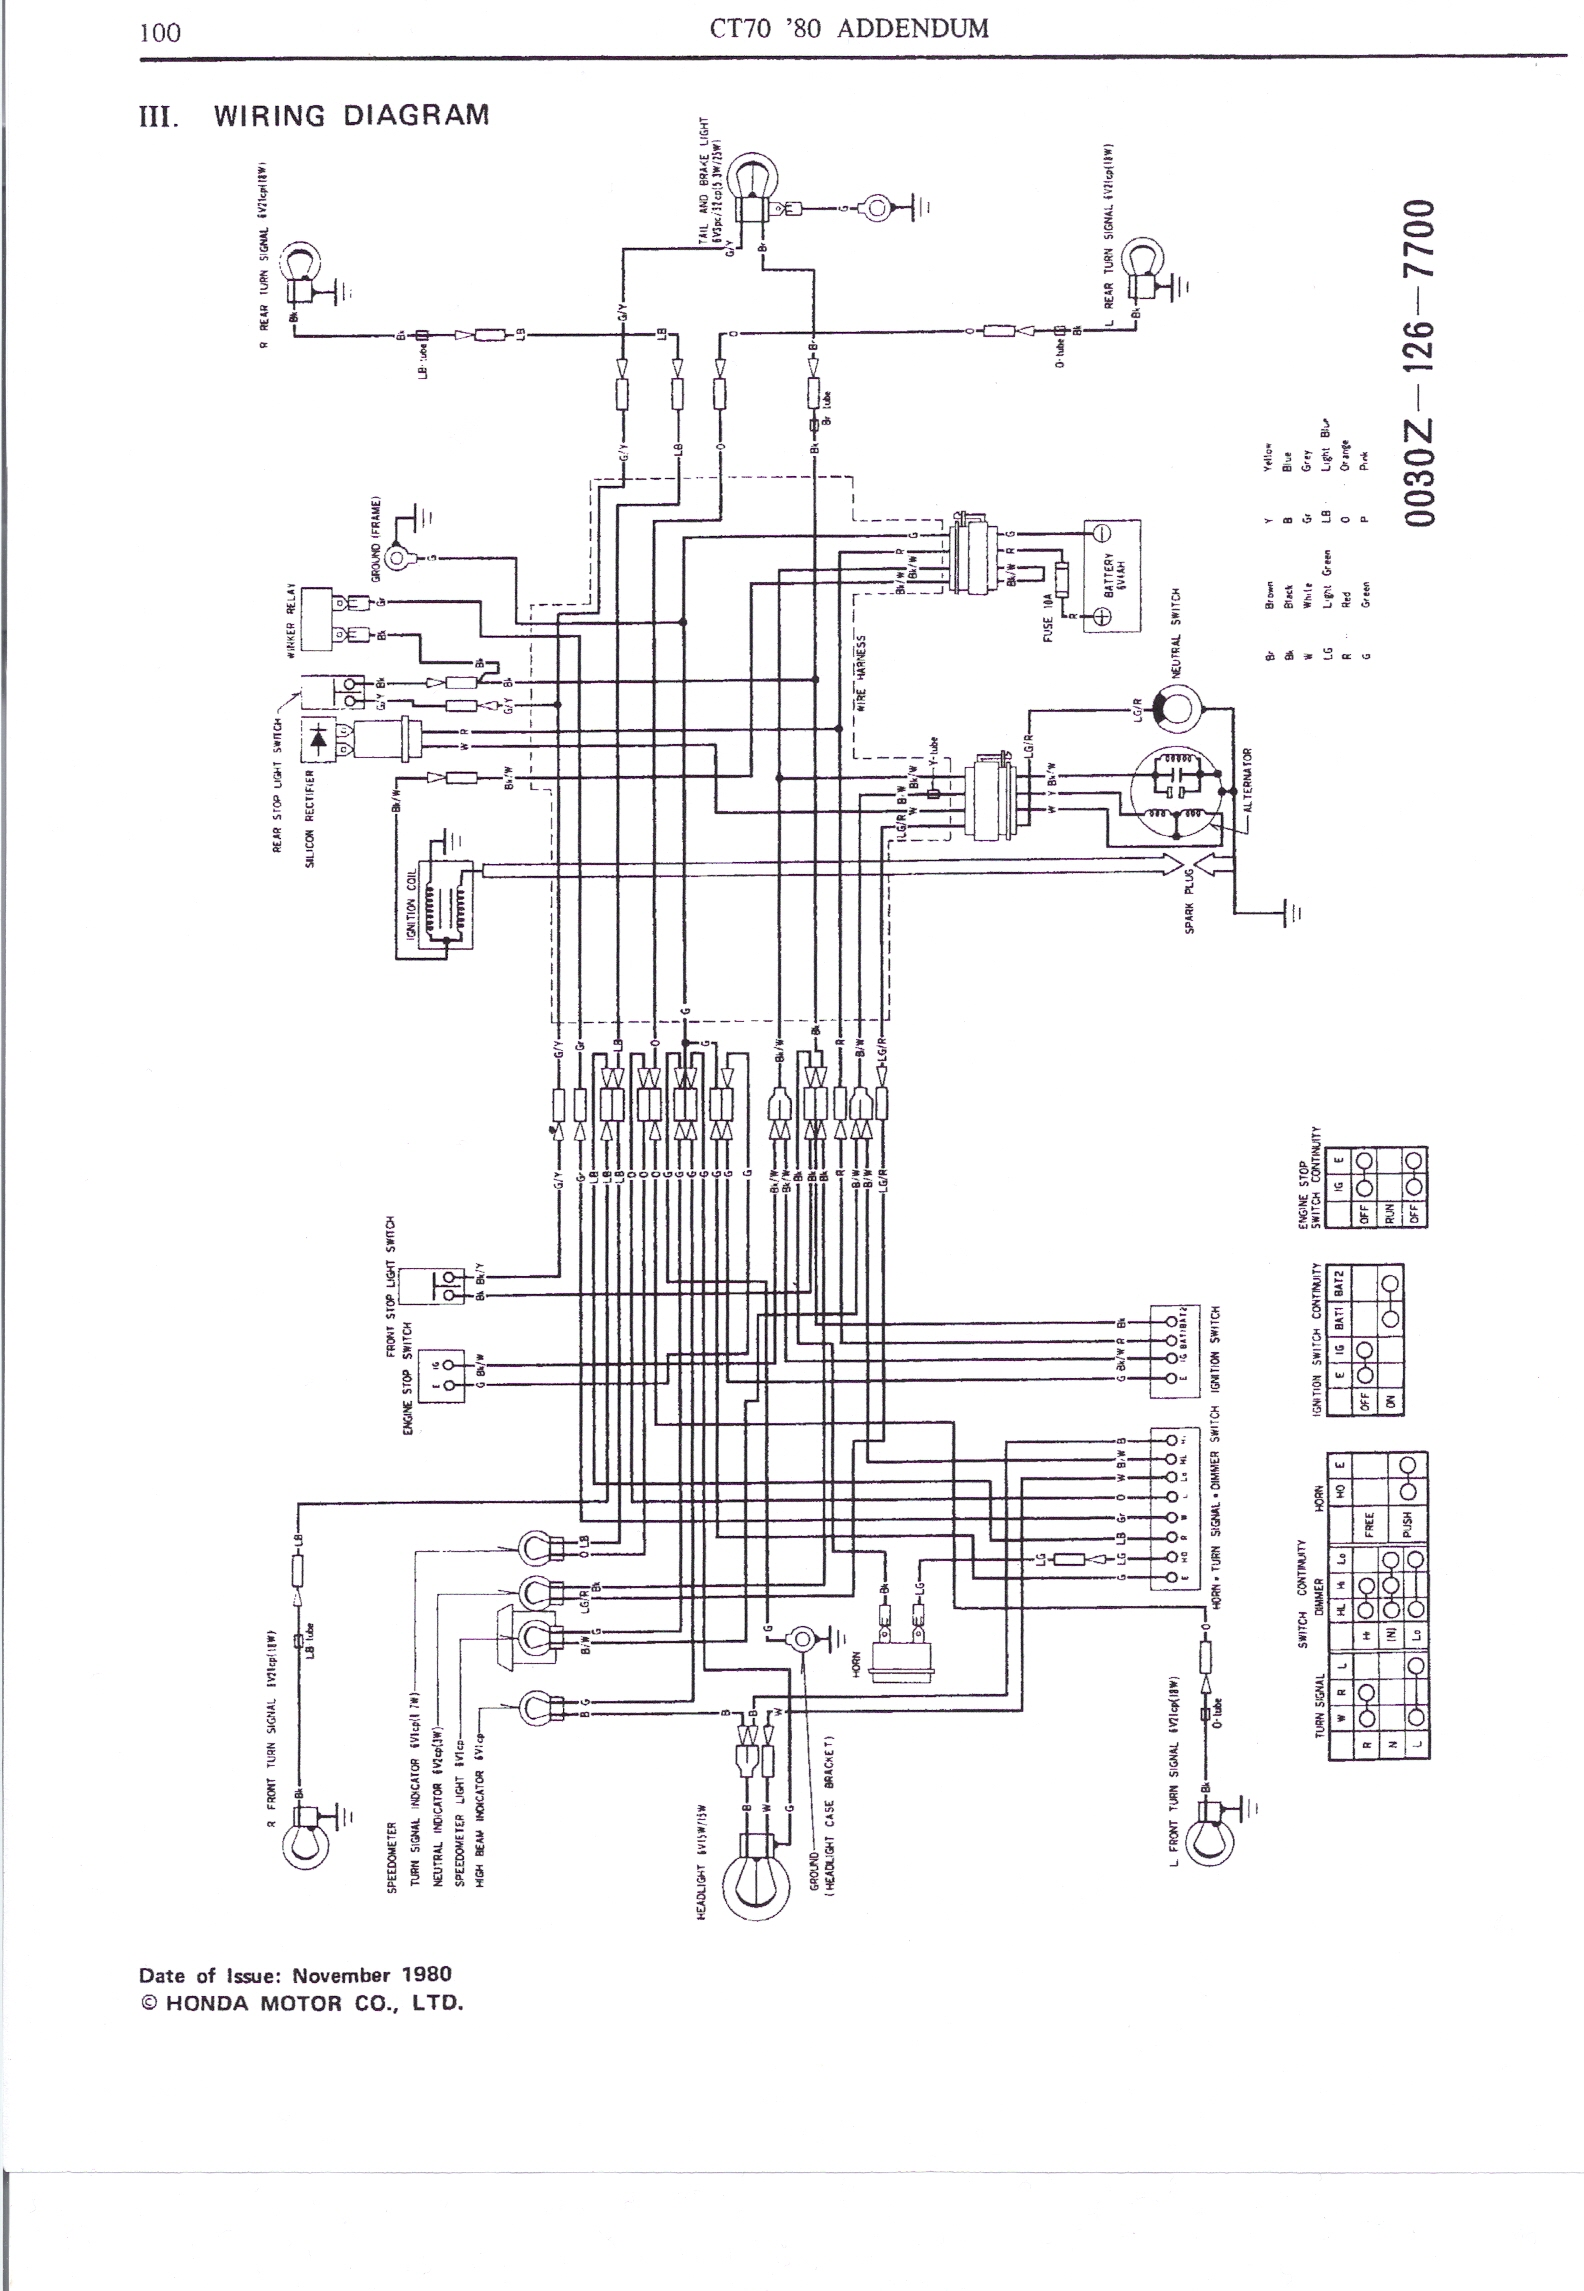 Honda Ct90 K0 Wiring Great Installation Of Diagram St90 Electrical Ct70 Auto C90